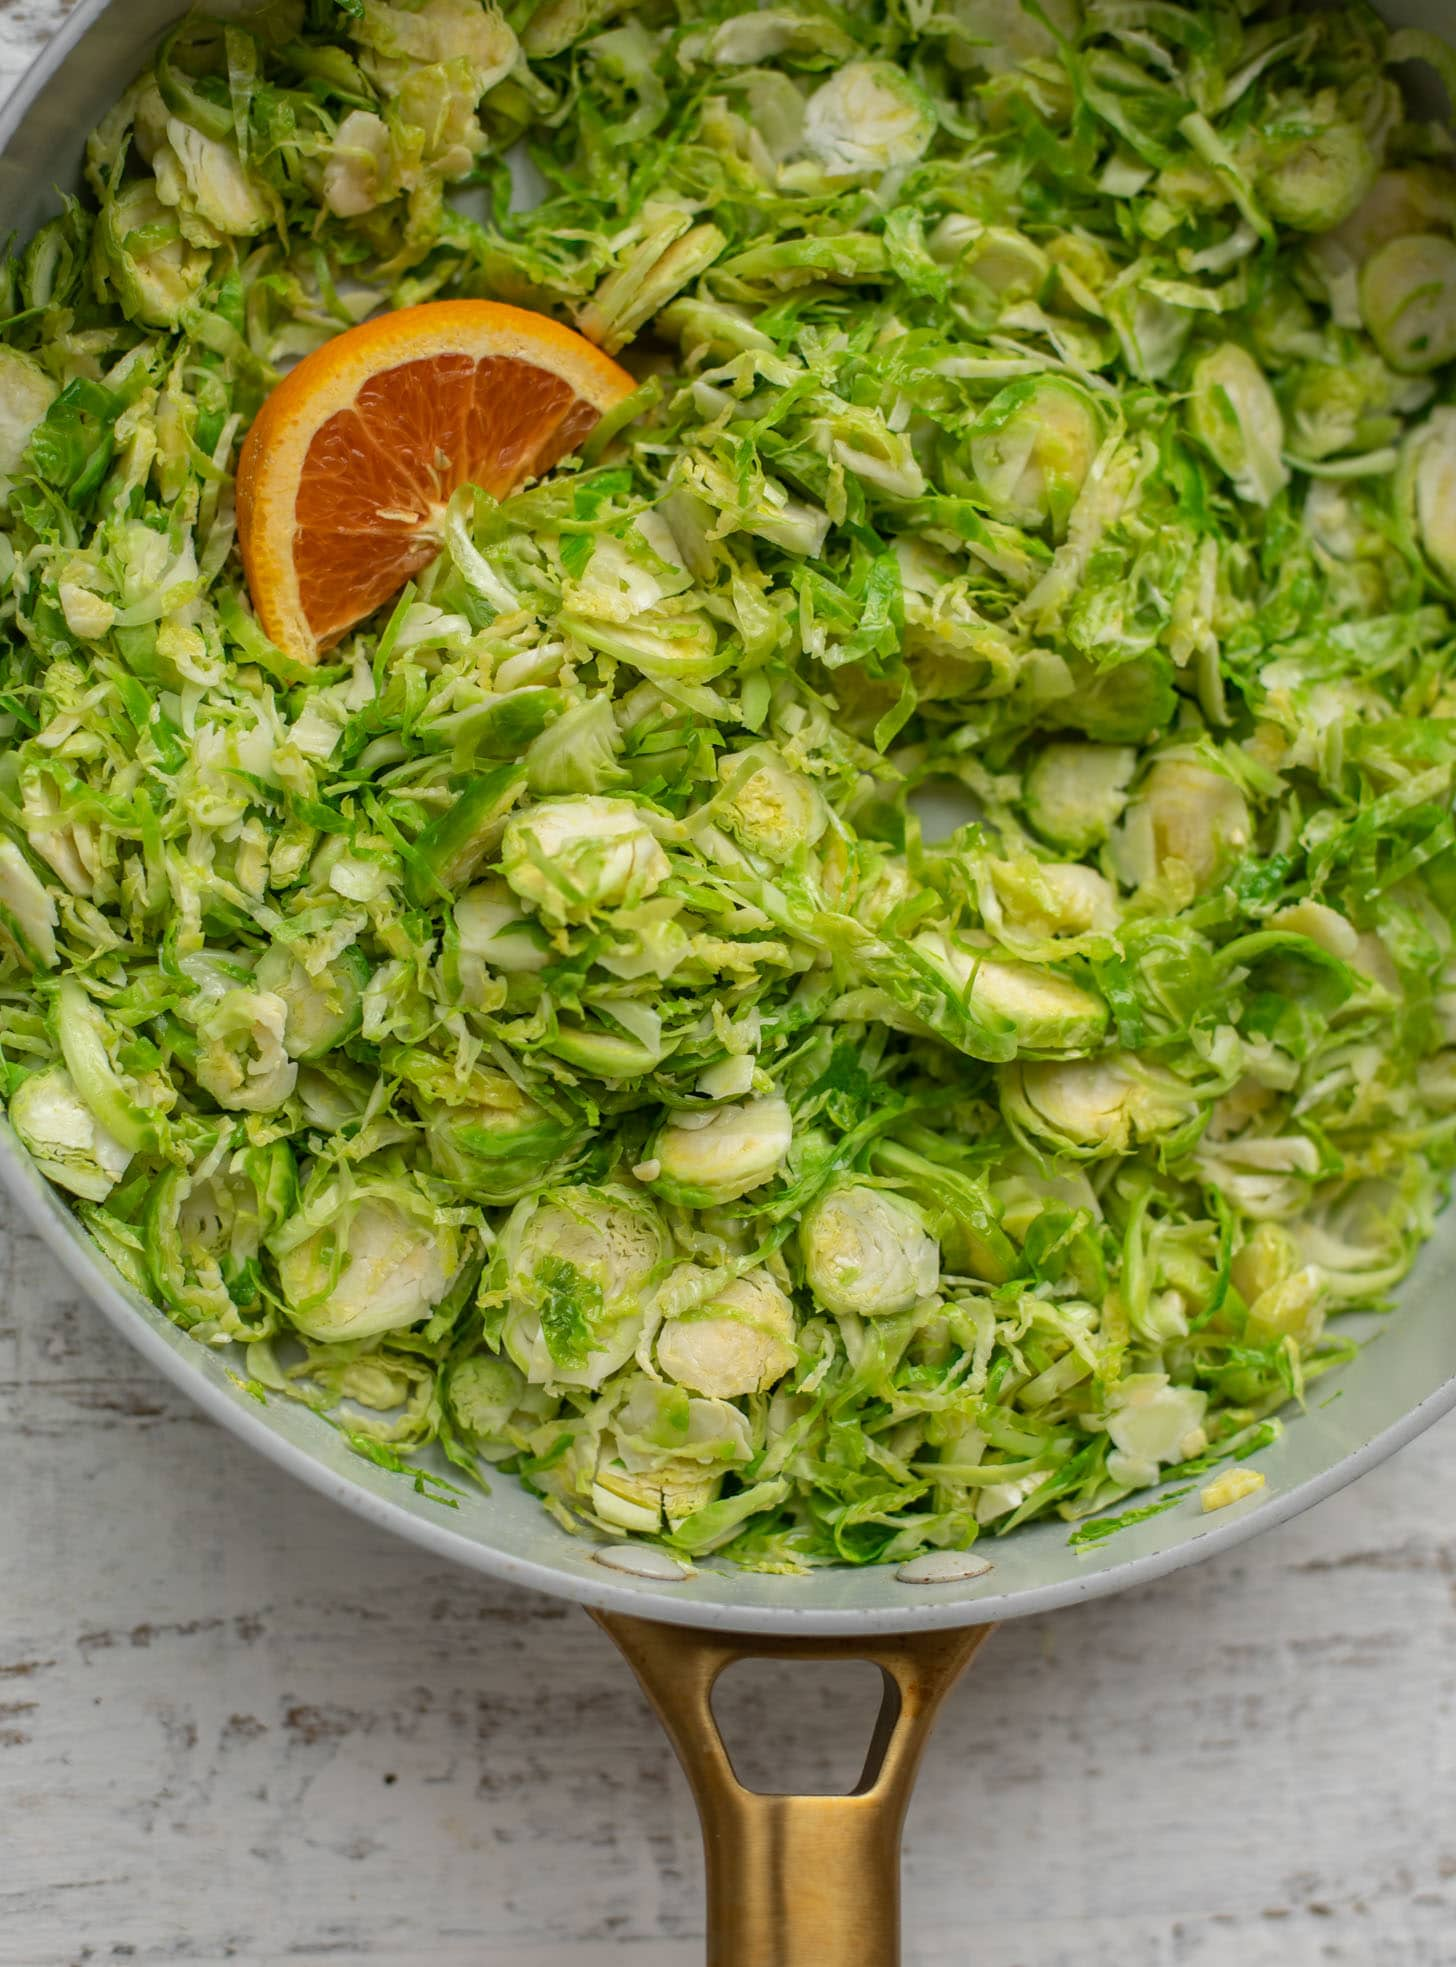 shredded brussels sprouts with orange